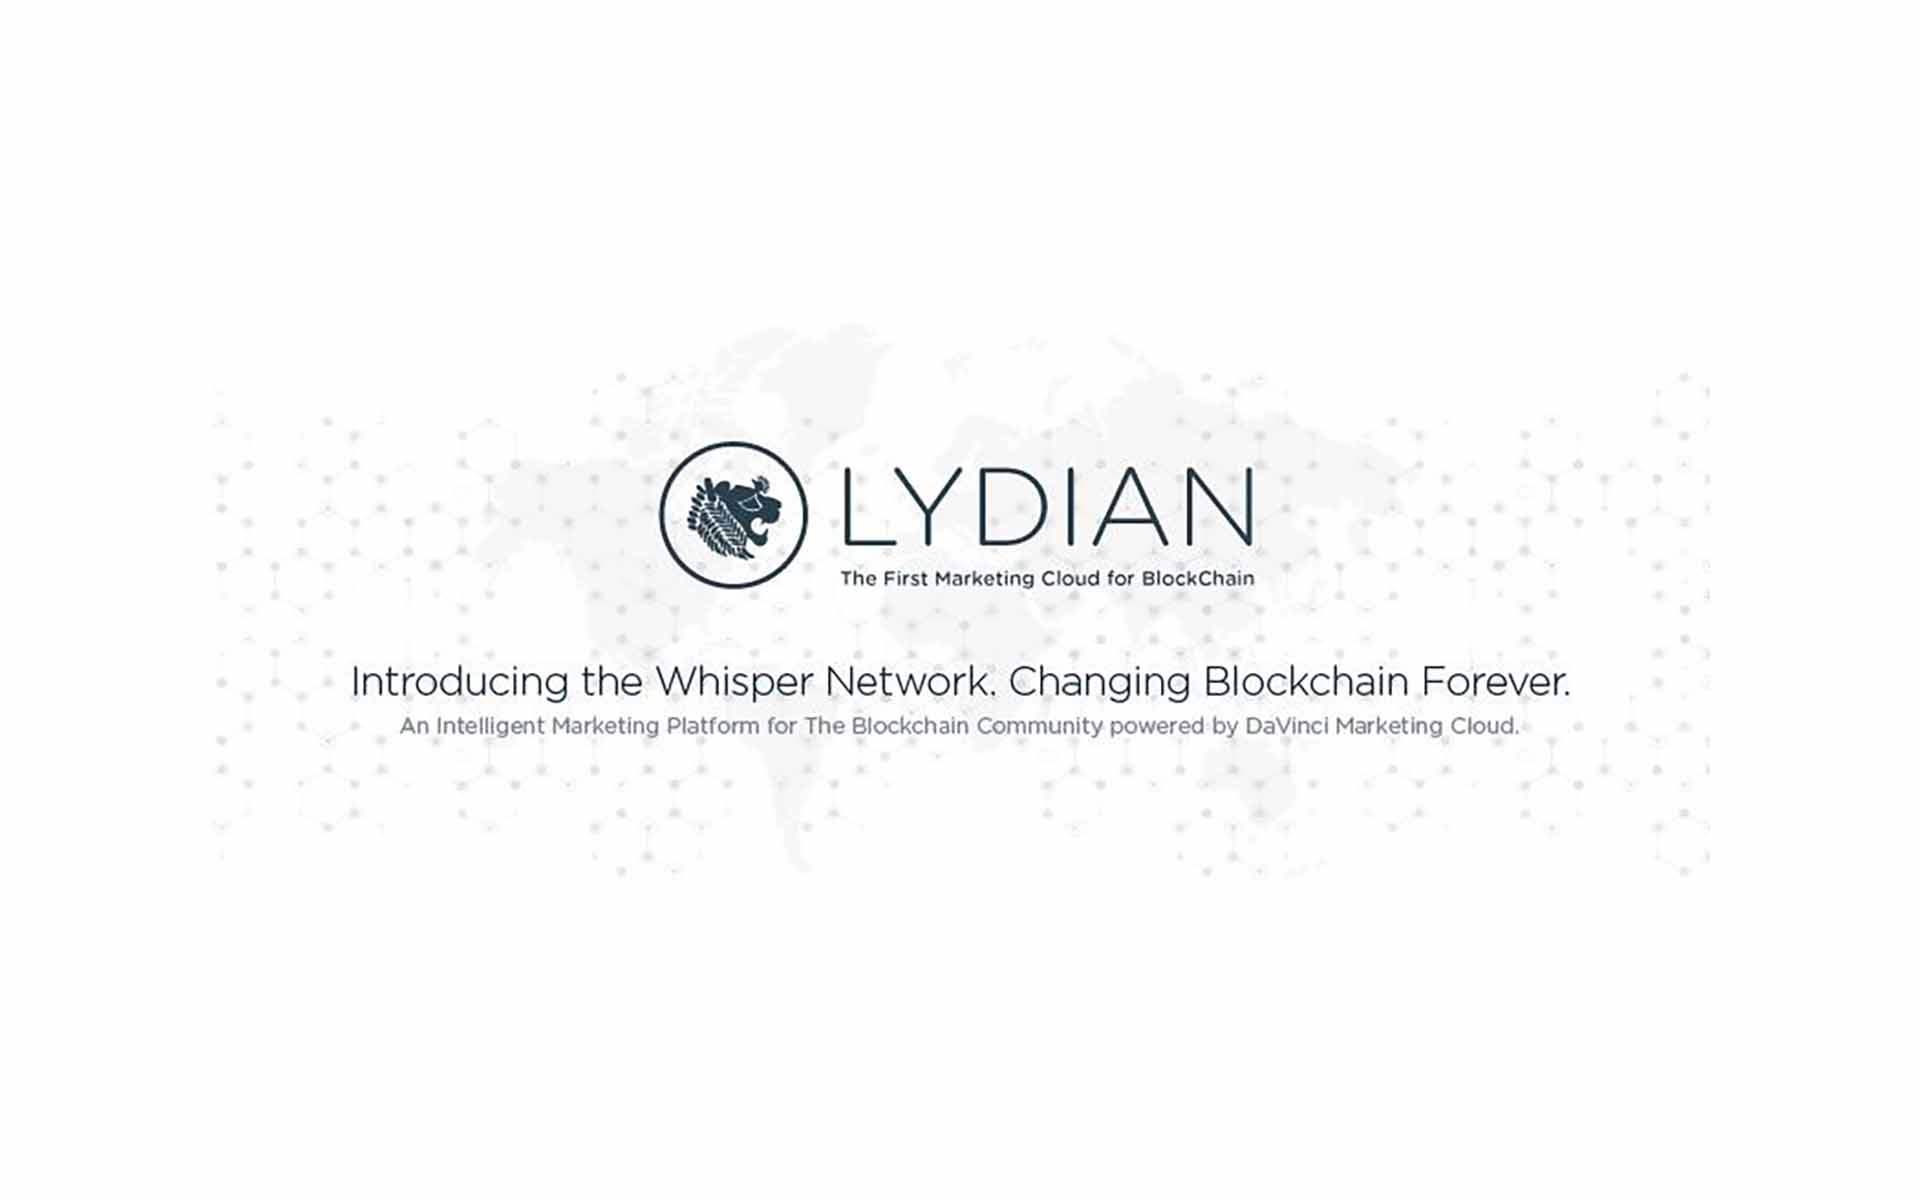 10 Hours Left to Participate in the LydianCoin ICO - Exclusive Offers to Participate in the Biggest Blockchain Marketing ICO